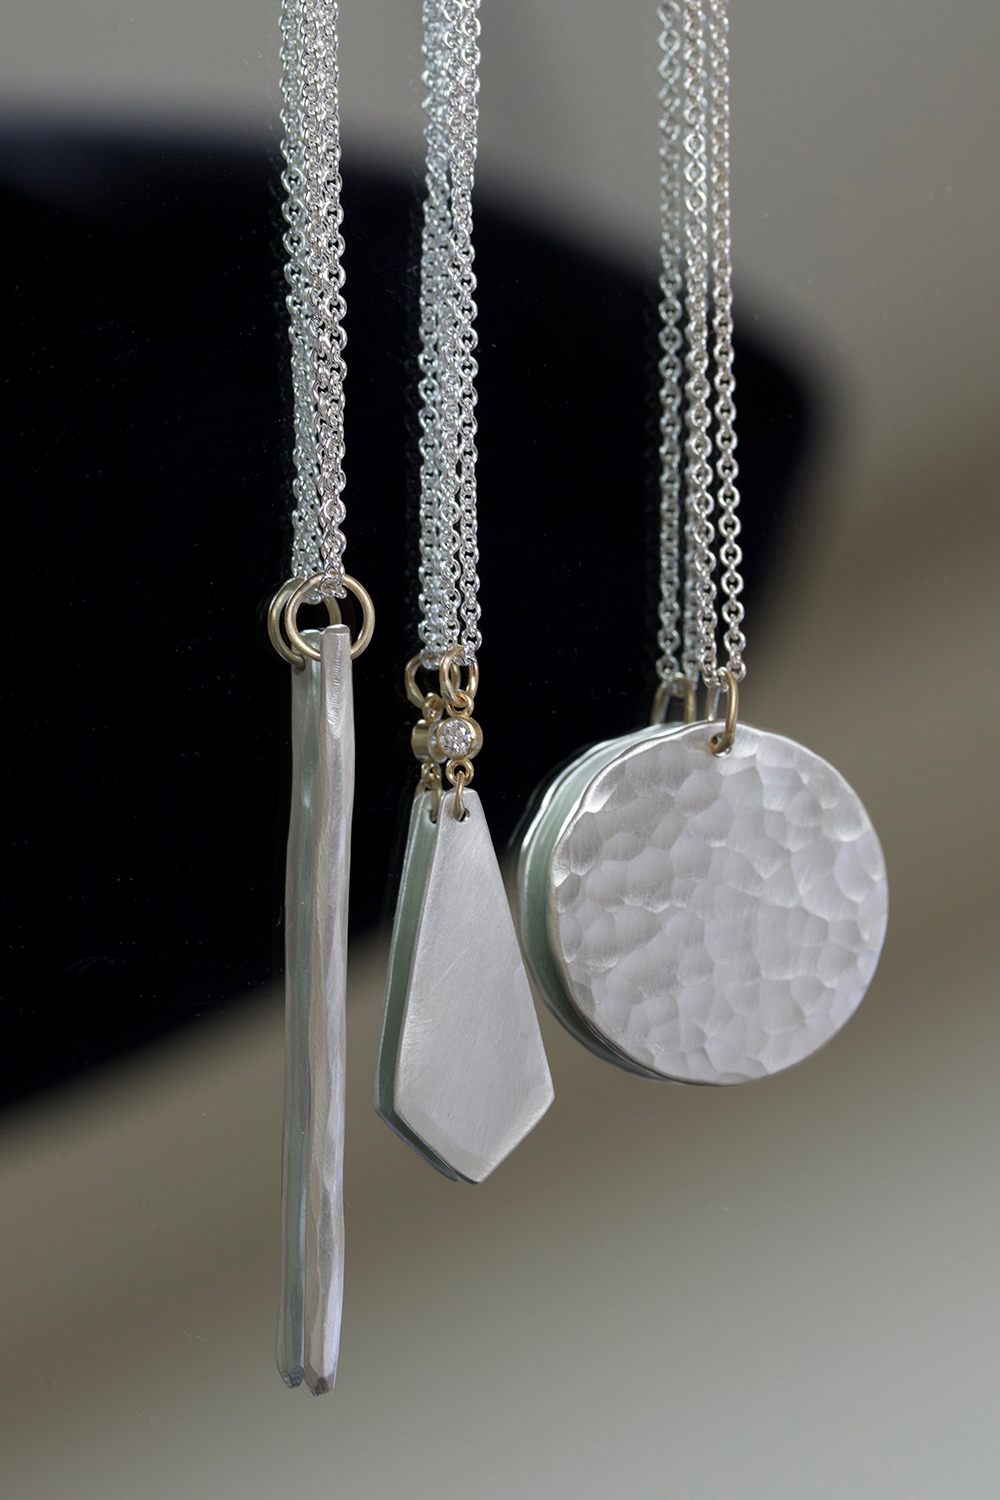 necklace trio on mirror.jpg